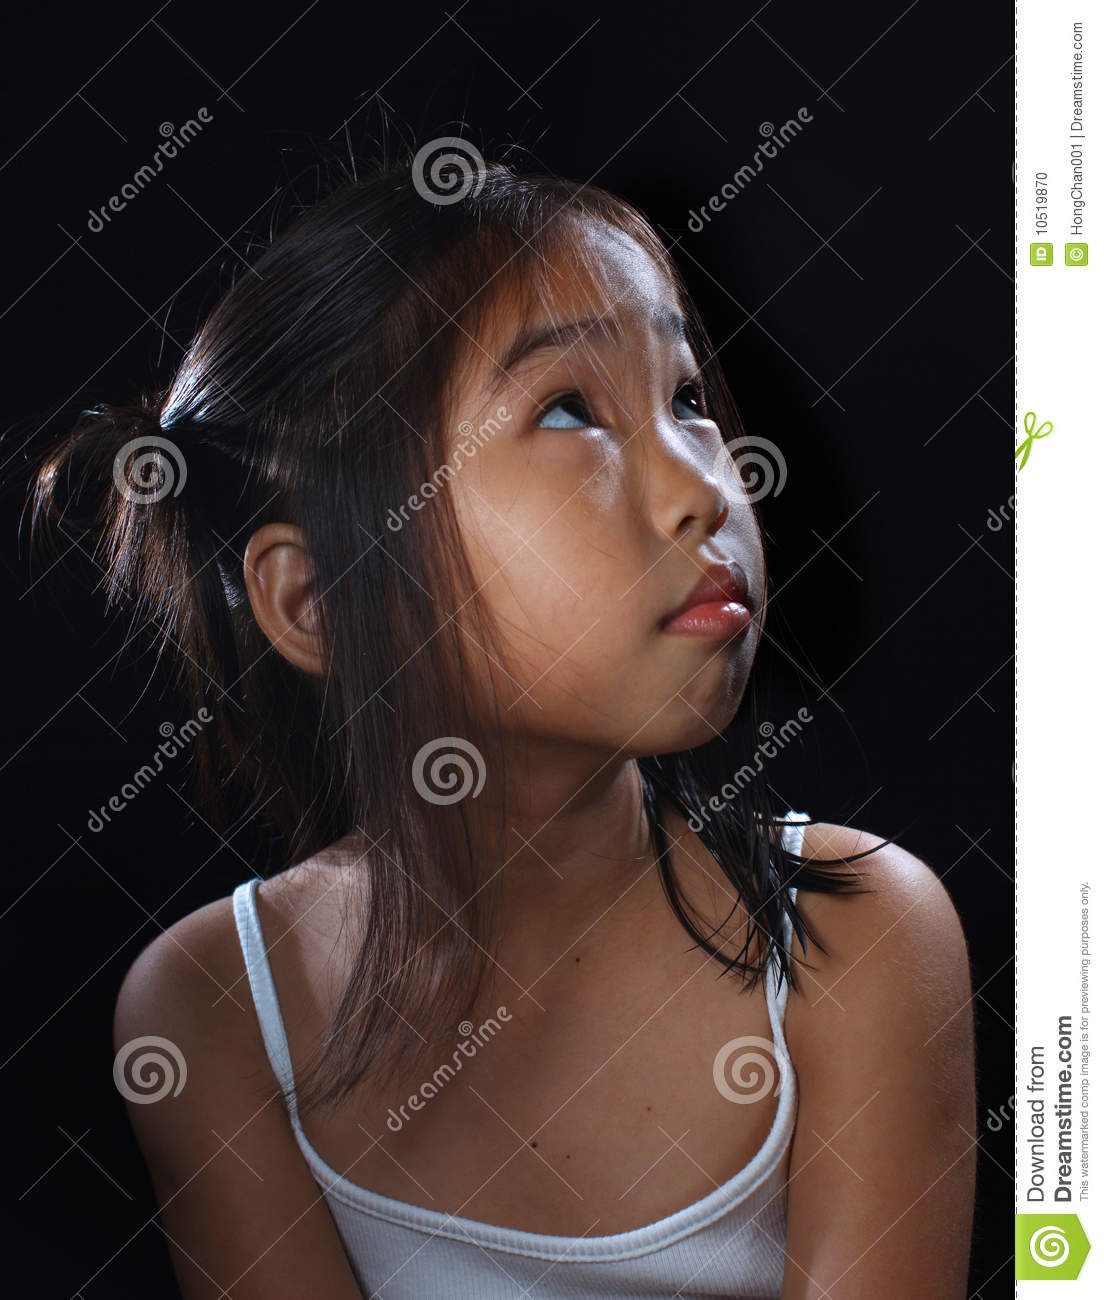 Lighting Black Background >> Cute asia girl stock photo. Image of people, lifestyle - 10519870